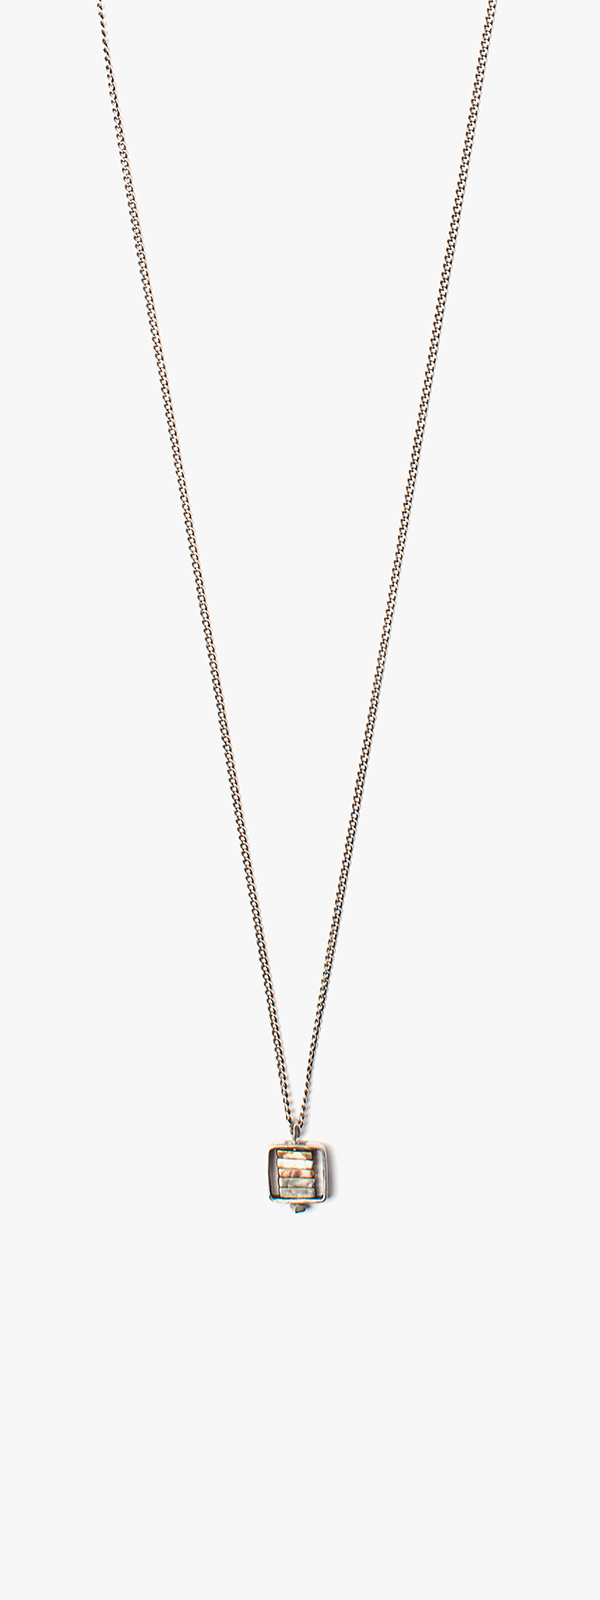 Image of Rotating Bars Necklace